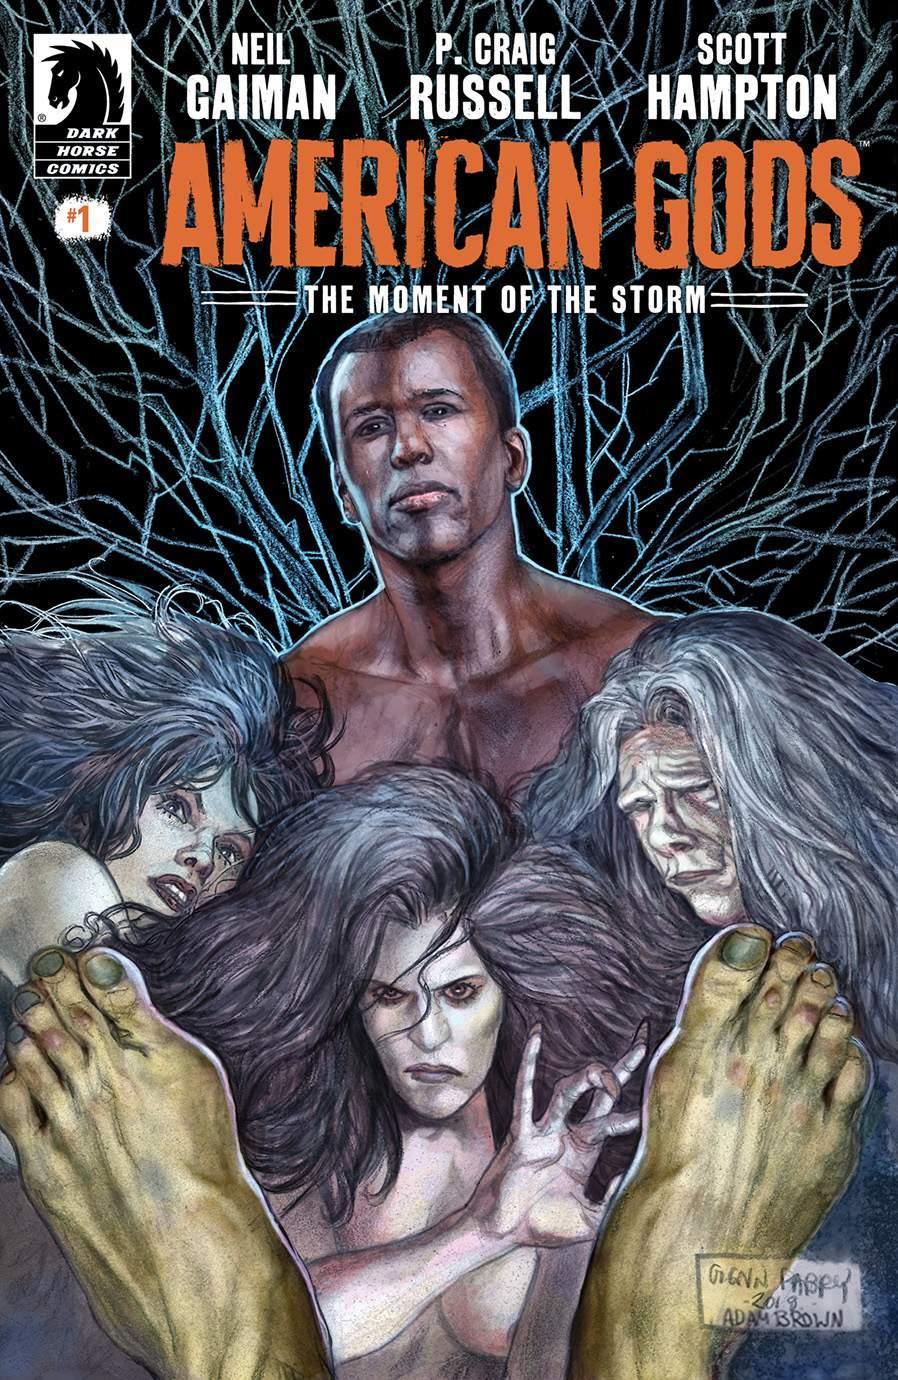 American-Gods-Moment-of-the-Storm-1-Cover